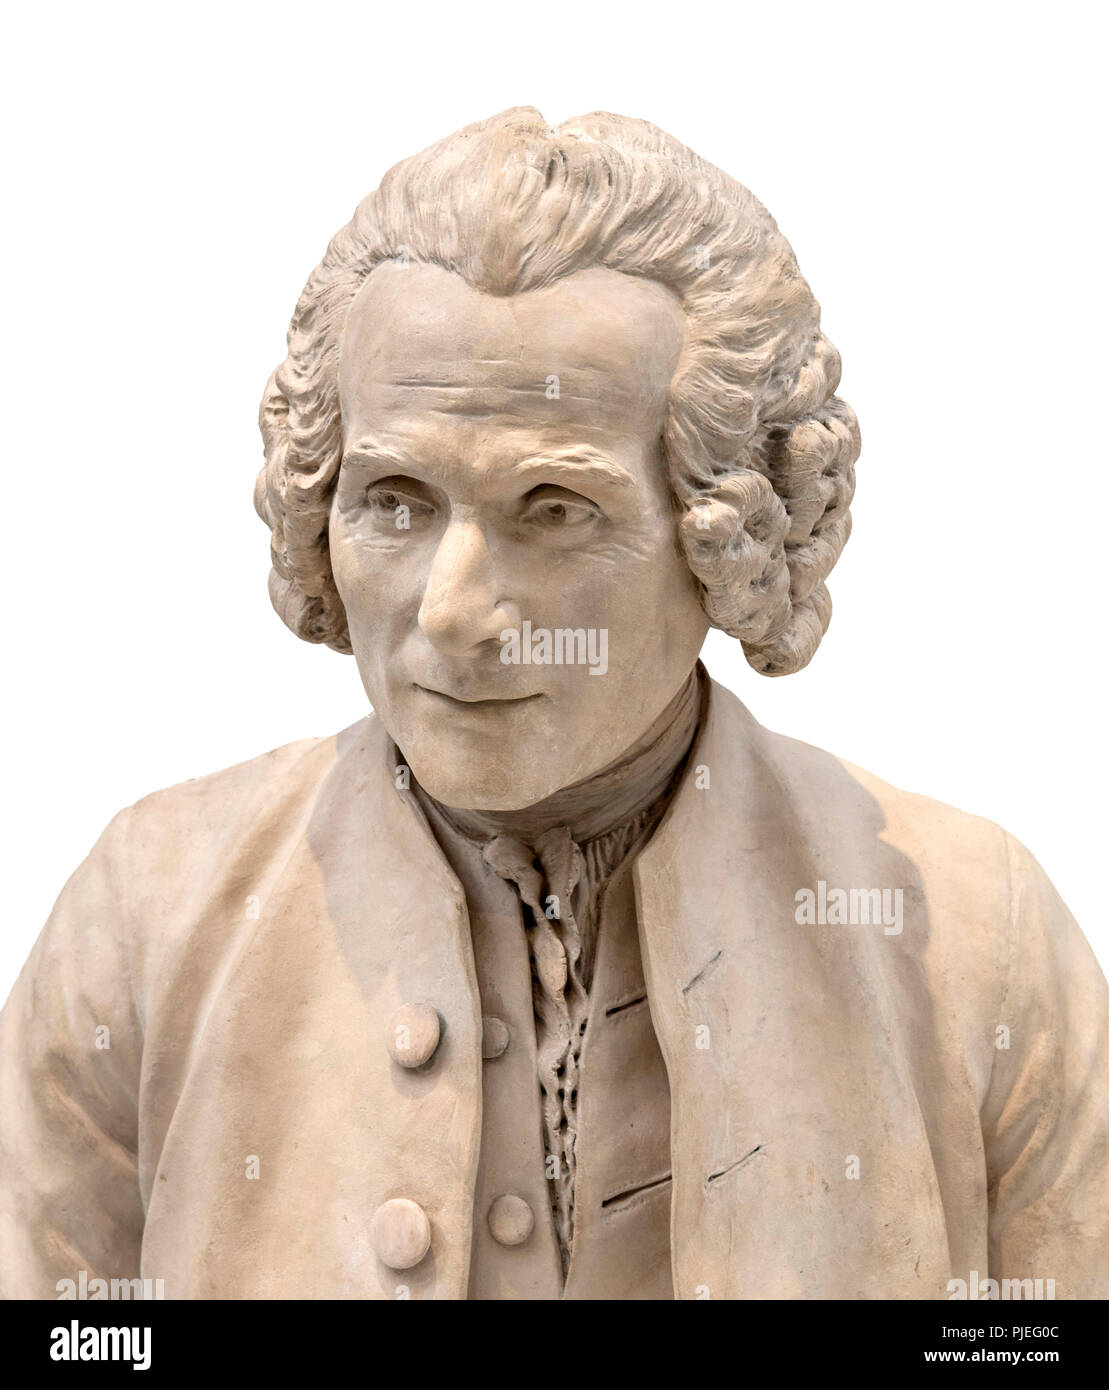 Jean-Jacques Rousseau (1712-1778). Bust of the Geneva born philosopher by Jean-Antoine Houdon (1741-1828), 1779 - Stock Image